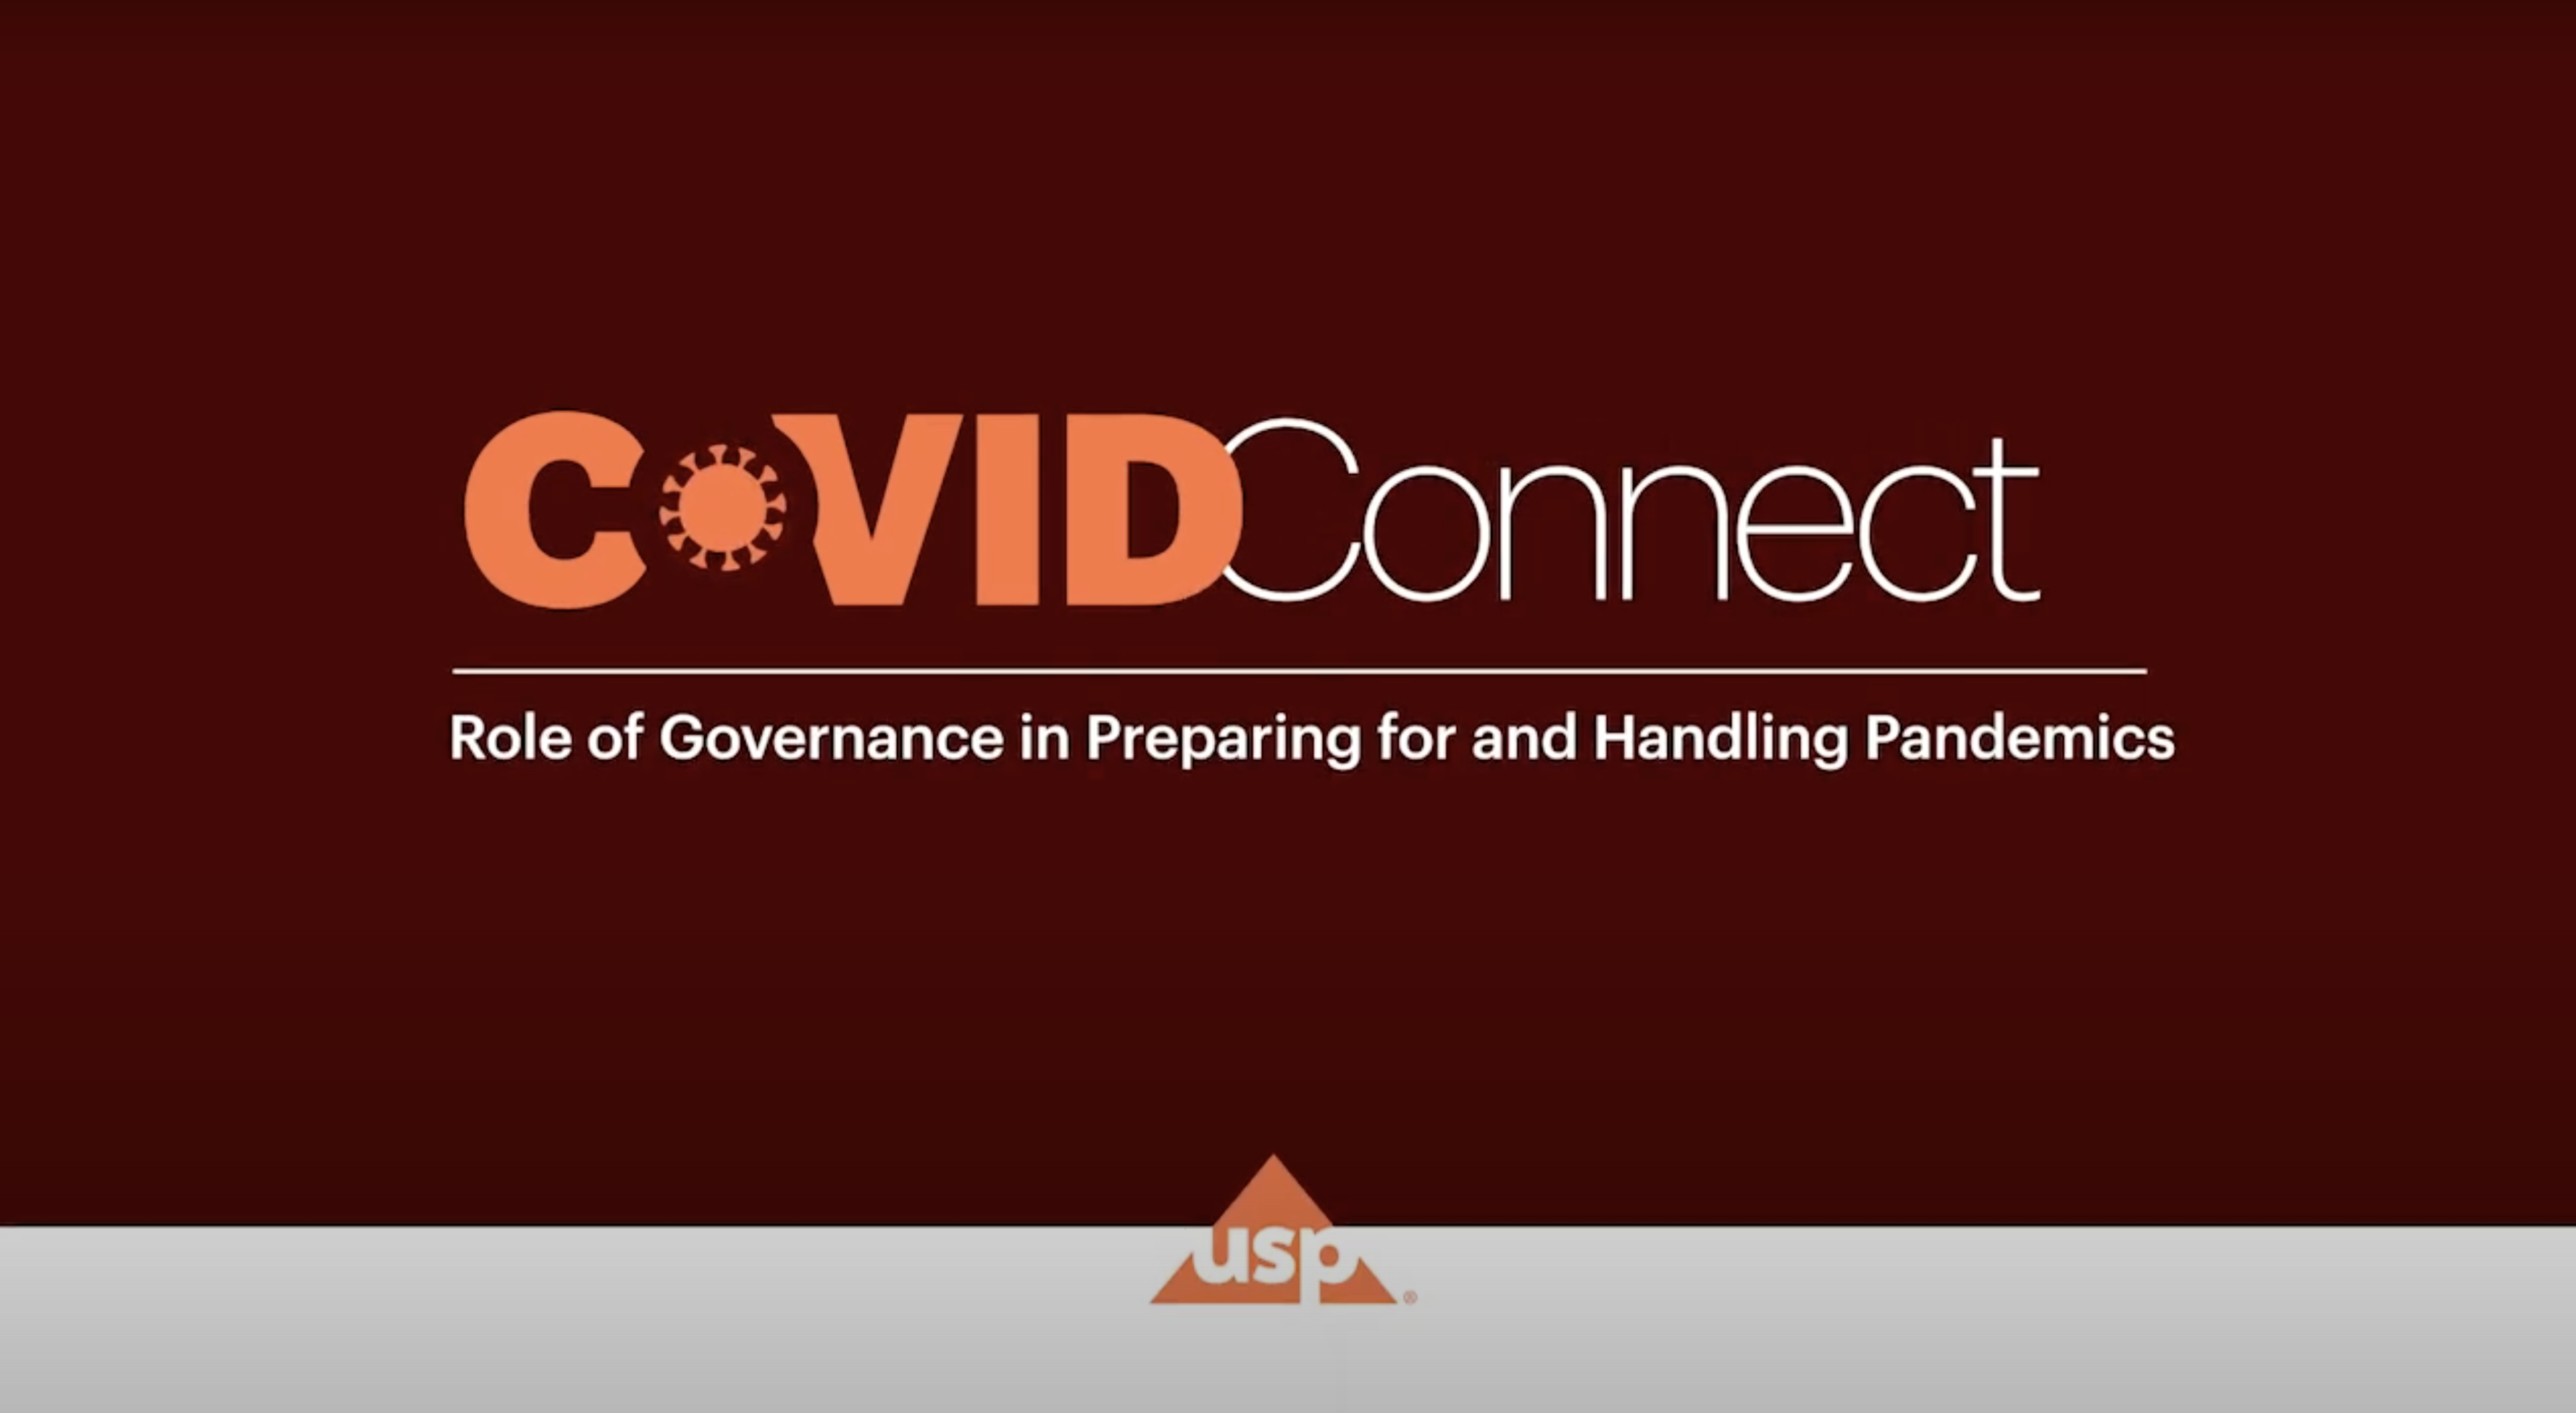 USP COVID-Connect | Role of Governance in Preparing for and Handling Pandemics